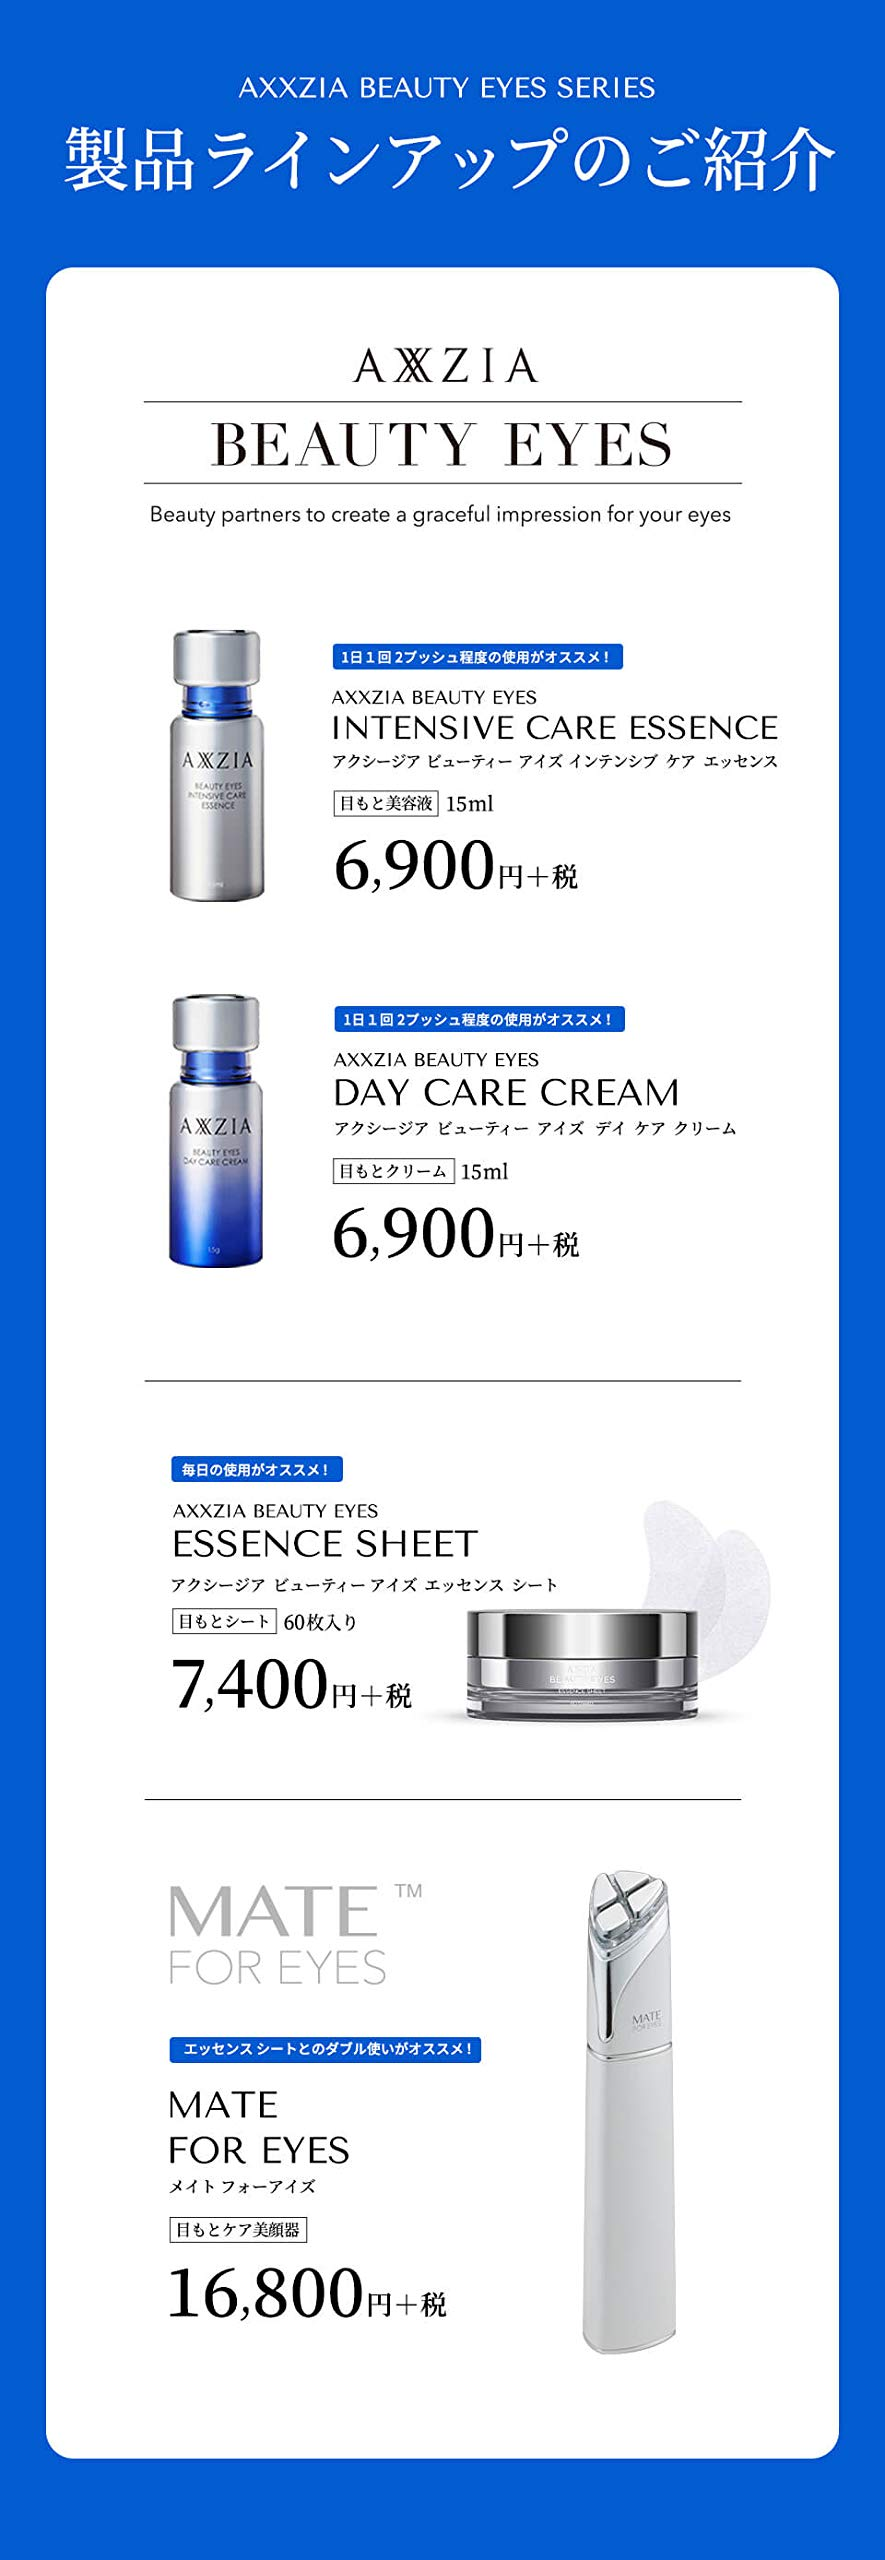 AXXZIA Beauty Eyes Essence Sheet Skincare for Eyes by AXXZIA (Image #9)